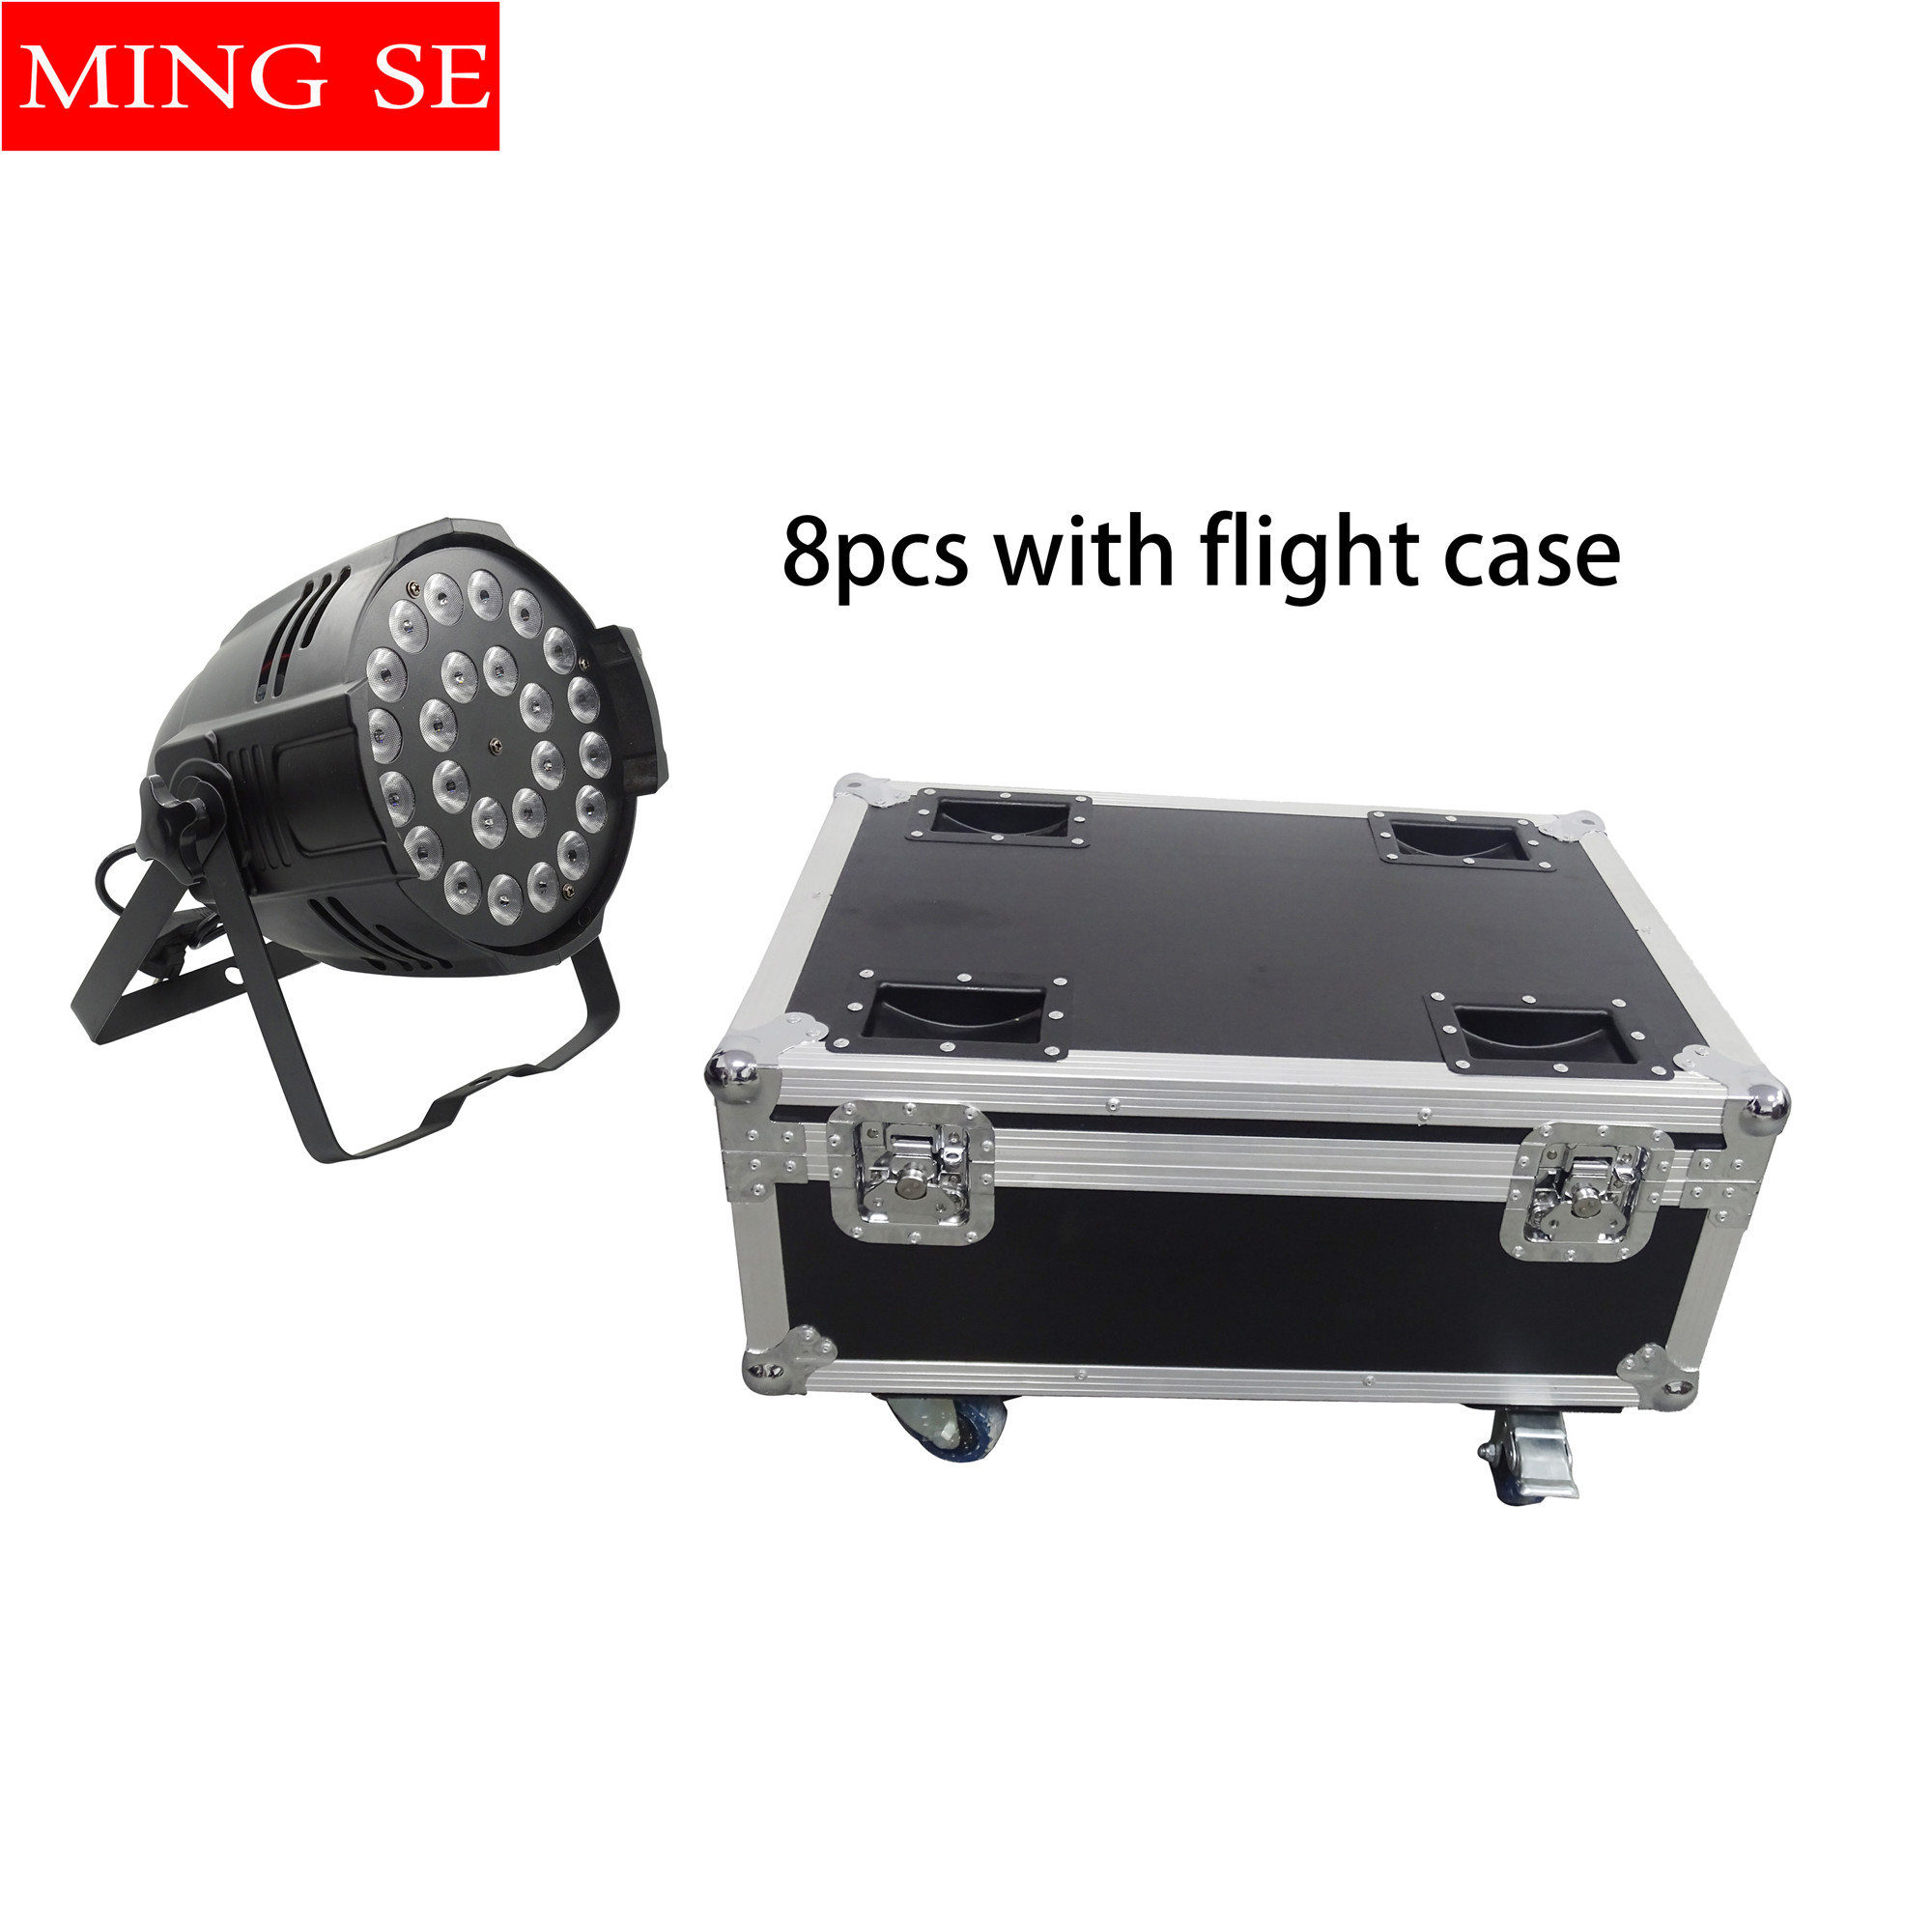 8units 24x12W  RGBW 4in1 Aluminum LED Par lights Stage Lights Beam Light  Projector With flight case8units 24x12W  RGBW 4in1 Aluminum LED Par lights Stage Lights Beam Light  Projector With flight case